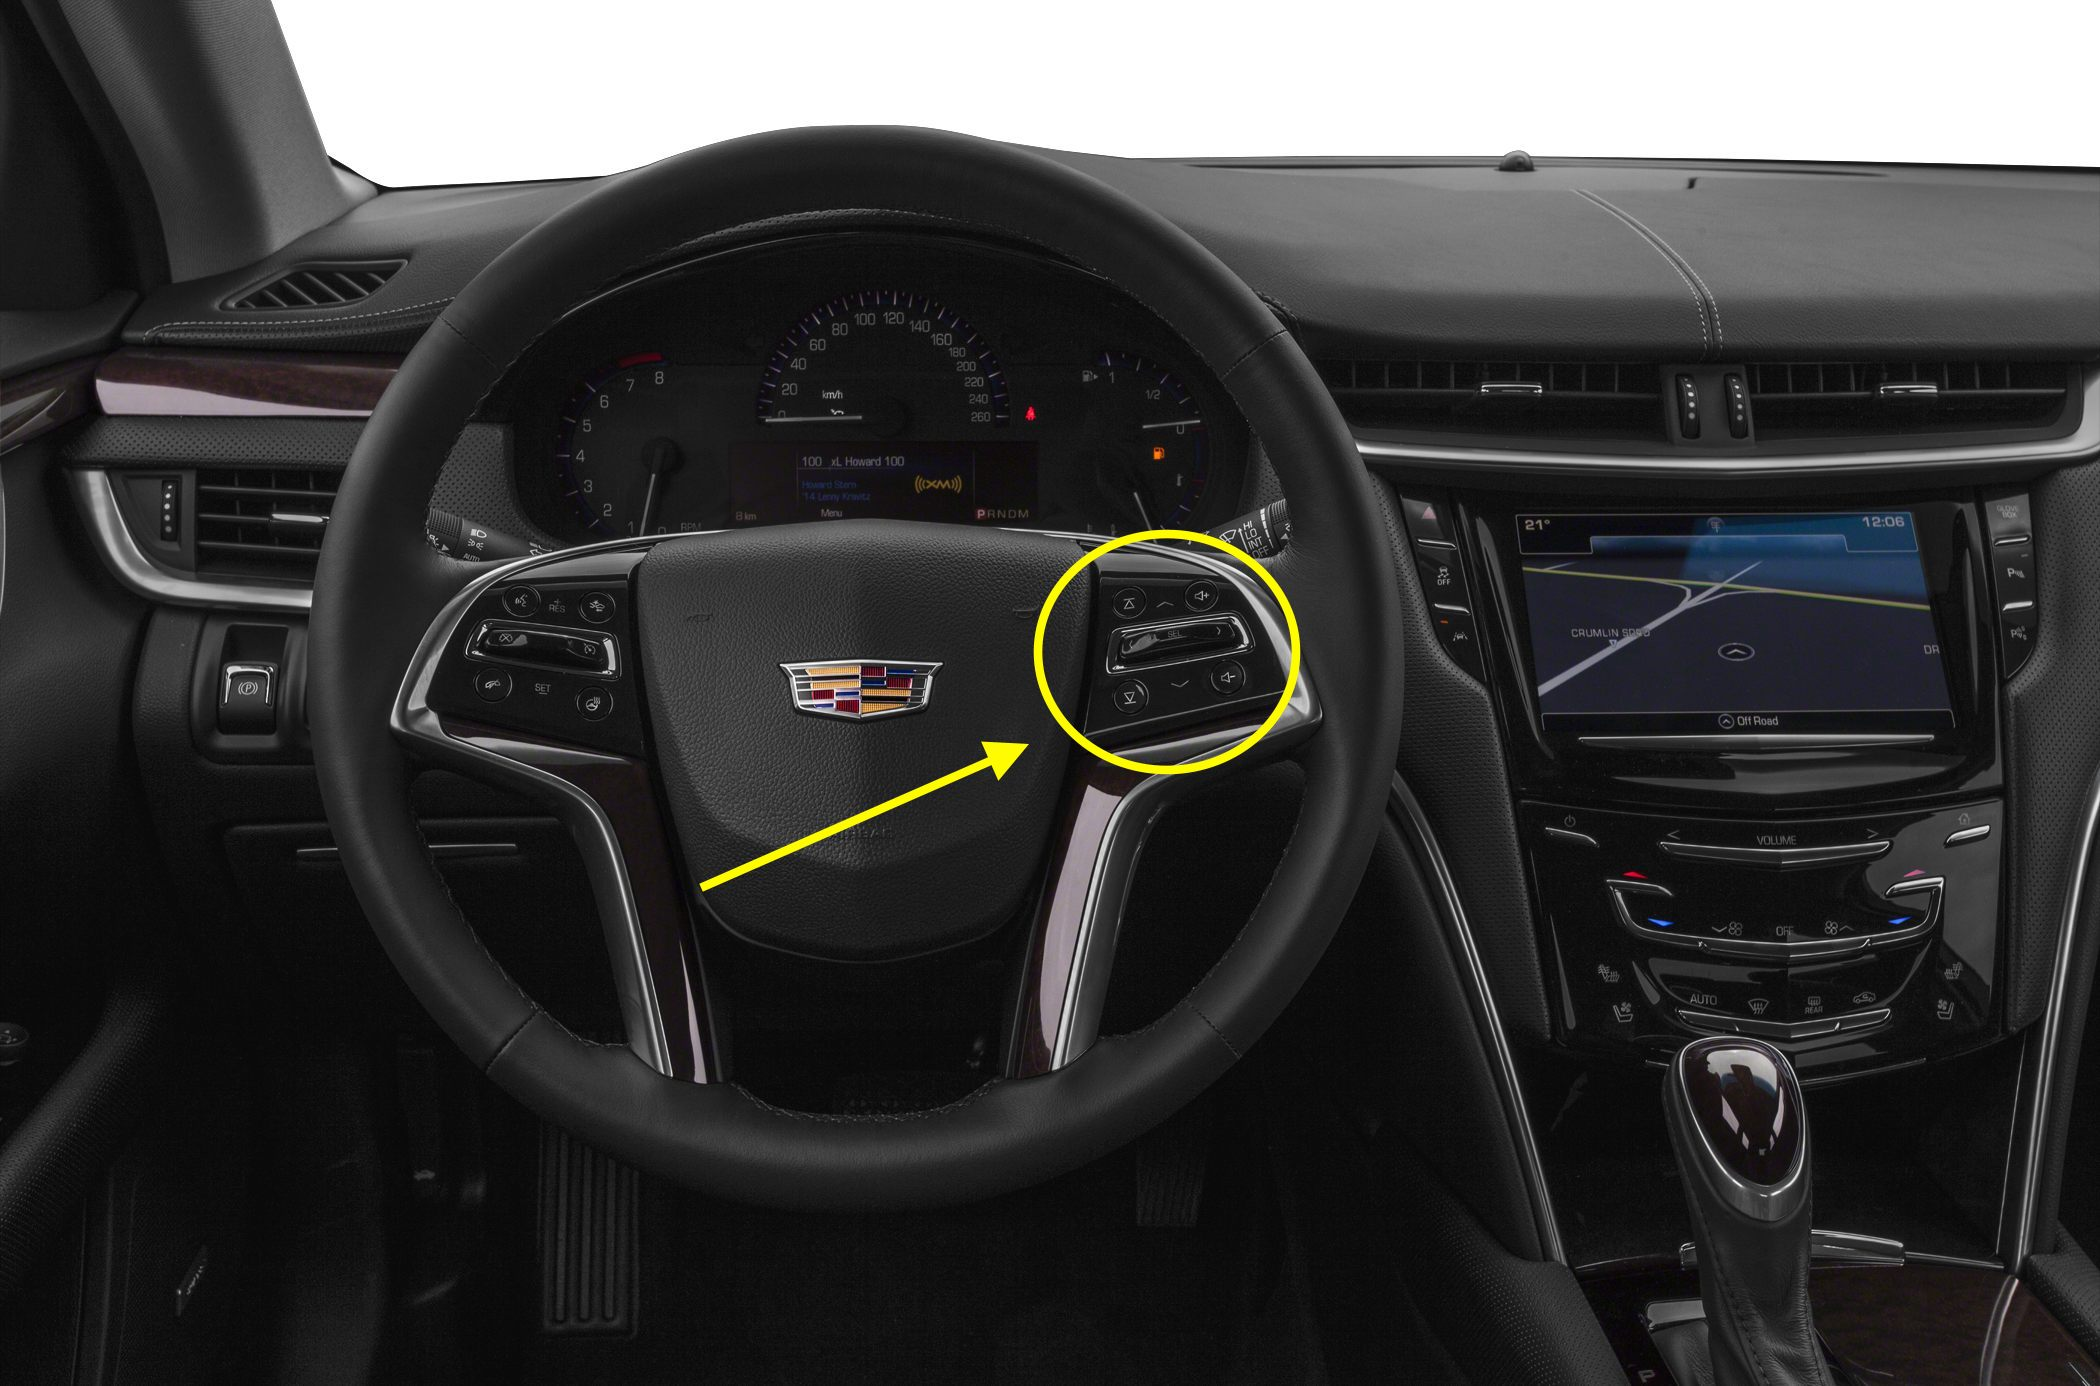 Oil Reset » Blog Archive » 2017 Cadillac XTS Interior